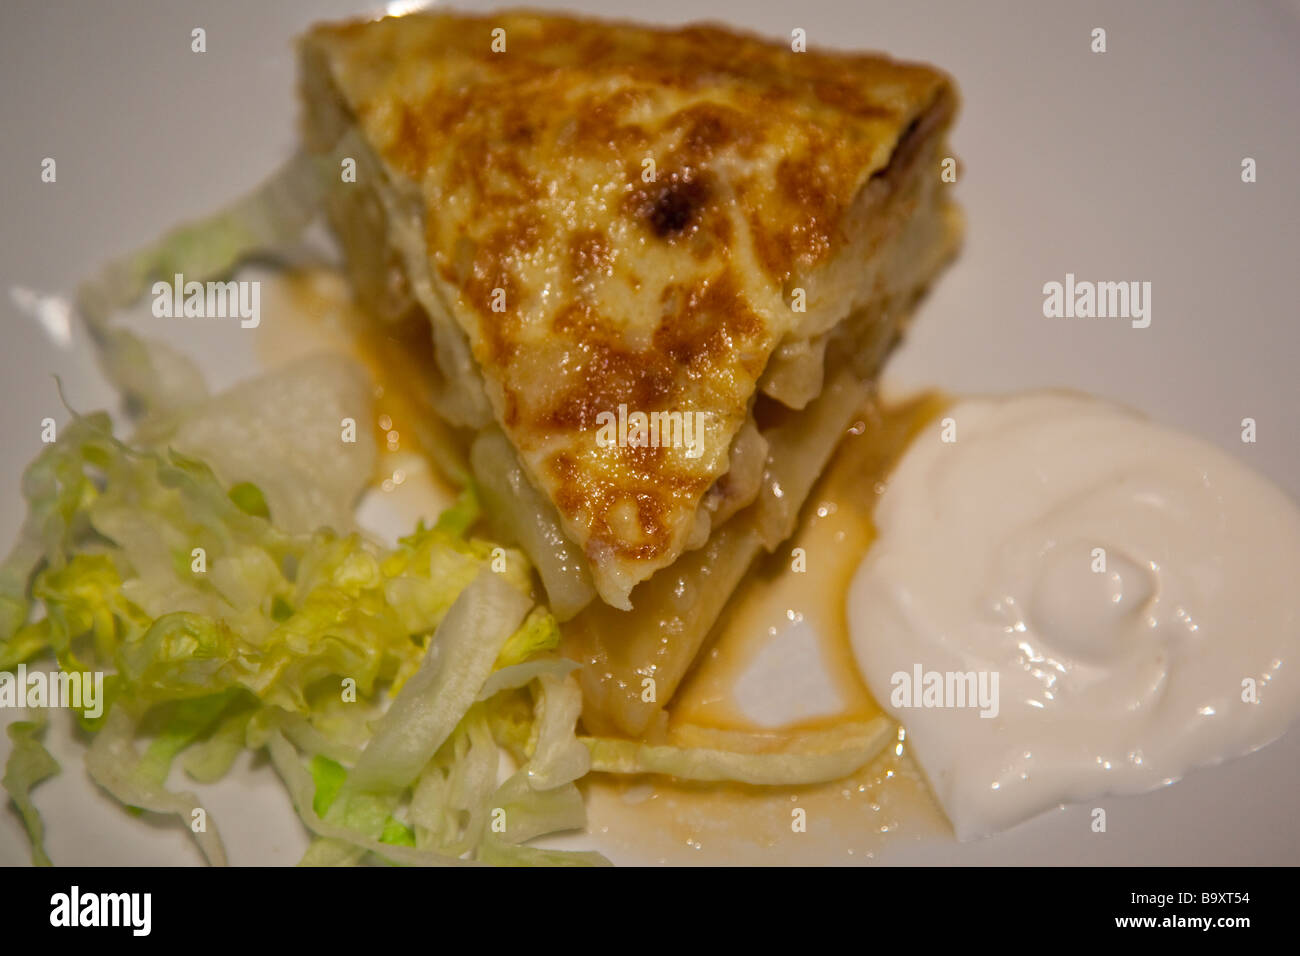 Tortilla Traditional Tapa at a Restaurant in Seville Spain - Stock Image